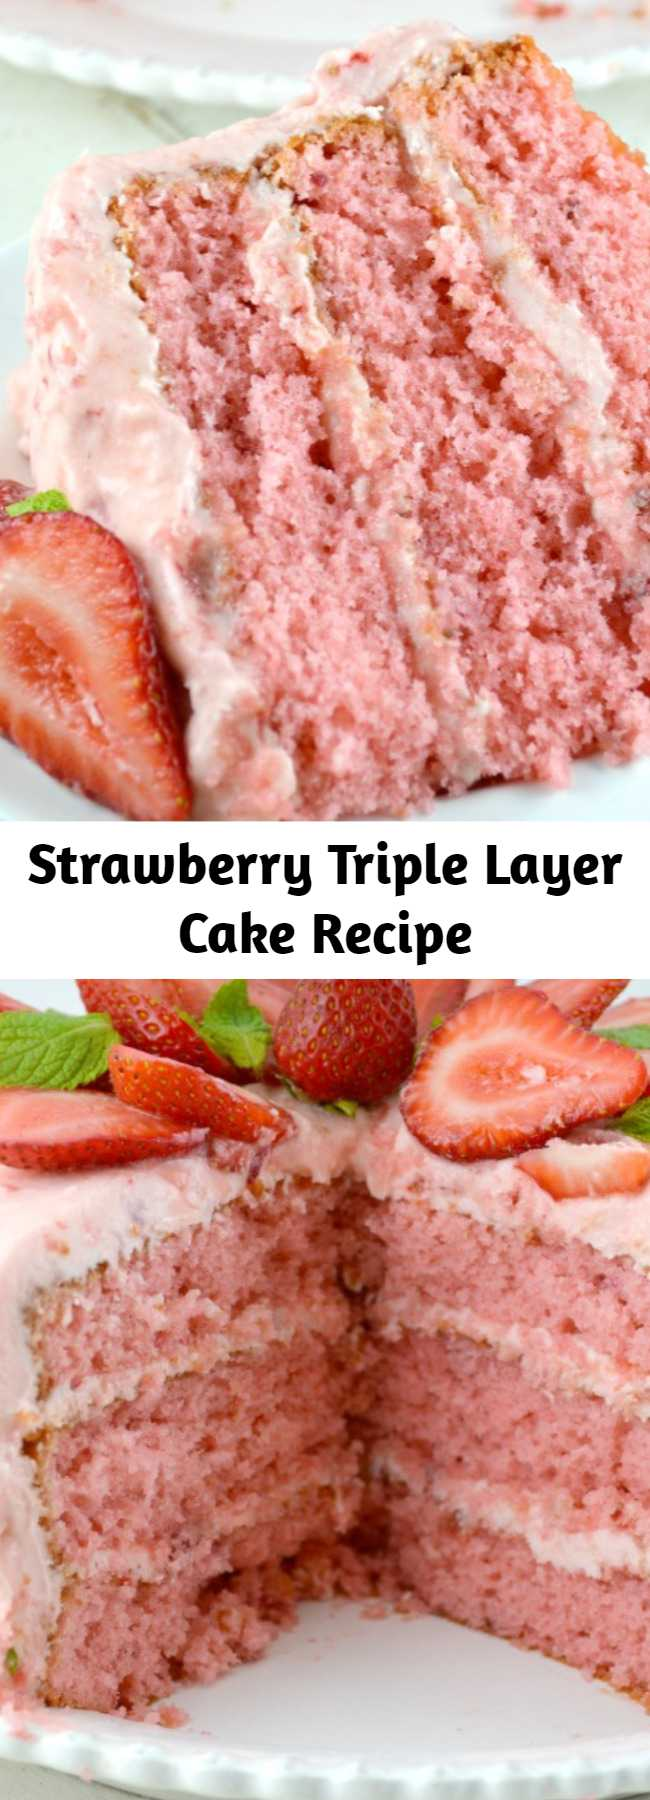 Our Easy Strawberry Triple Decker Cake Recipe is an absolute showstopper. Loaded with Fresh Strawberries, this Homemade Southern Delight is guaranteed to be a hit! Super Moist, Rich and Really Sweet, all topped with Strawberry Buttercream Frosting!!